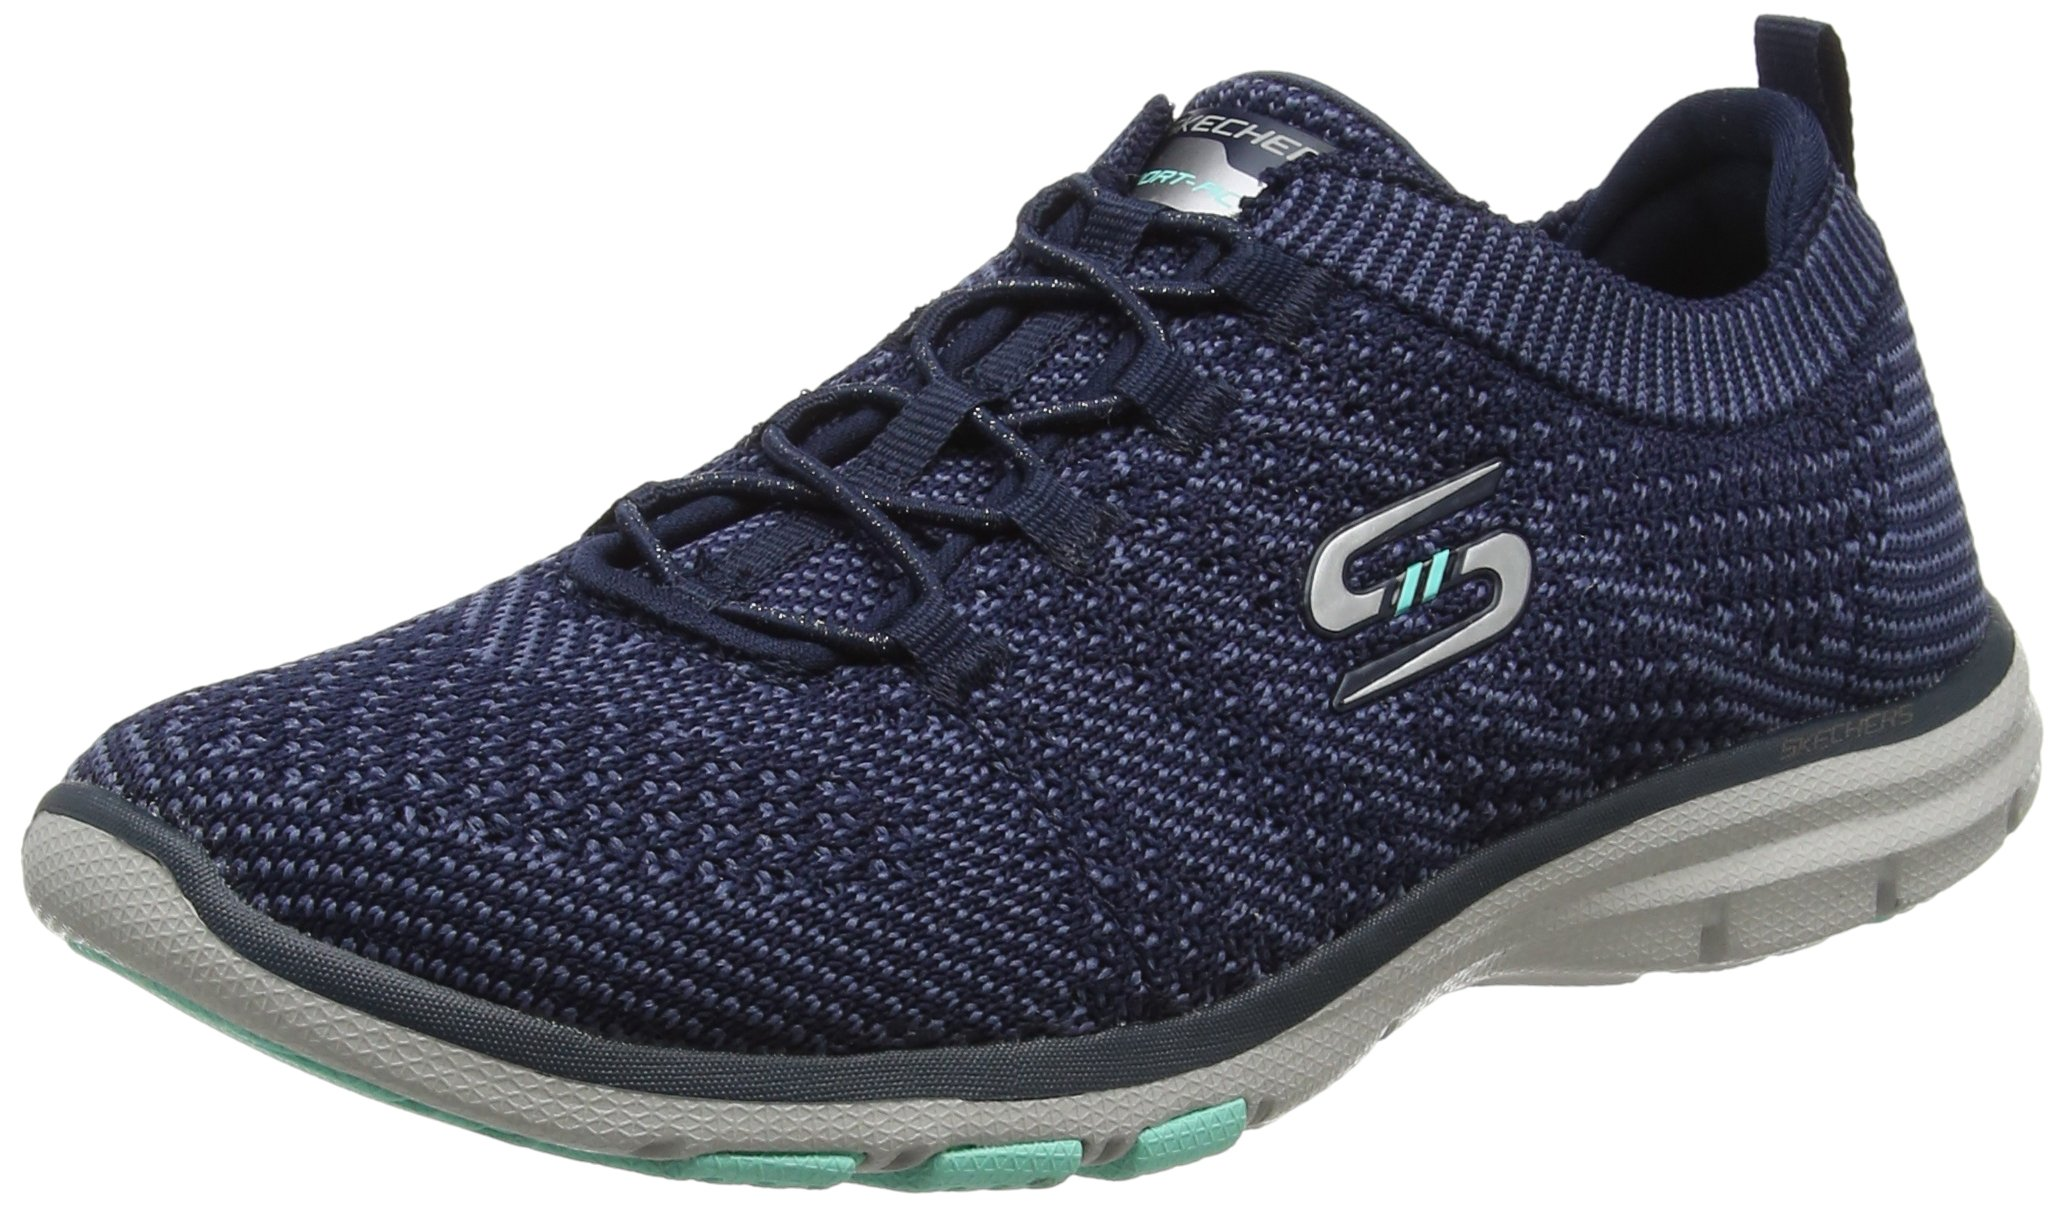 Skechers Galaxies Womens Slip On Sneakers Navy/Blue 6.5